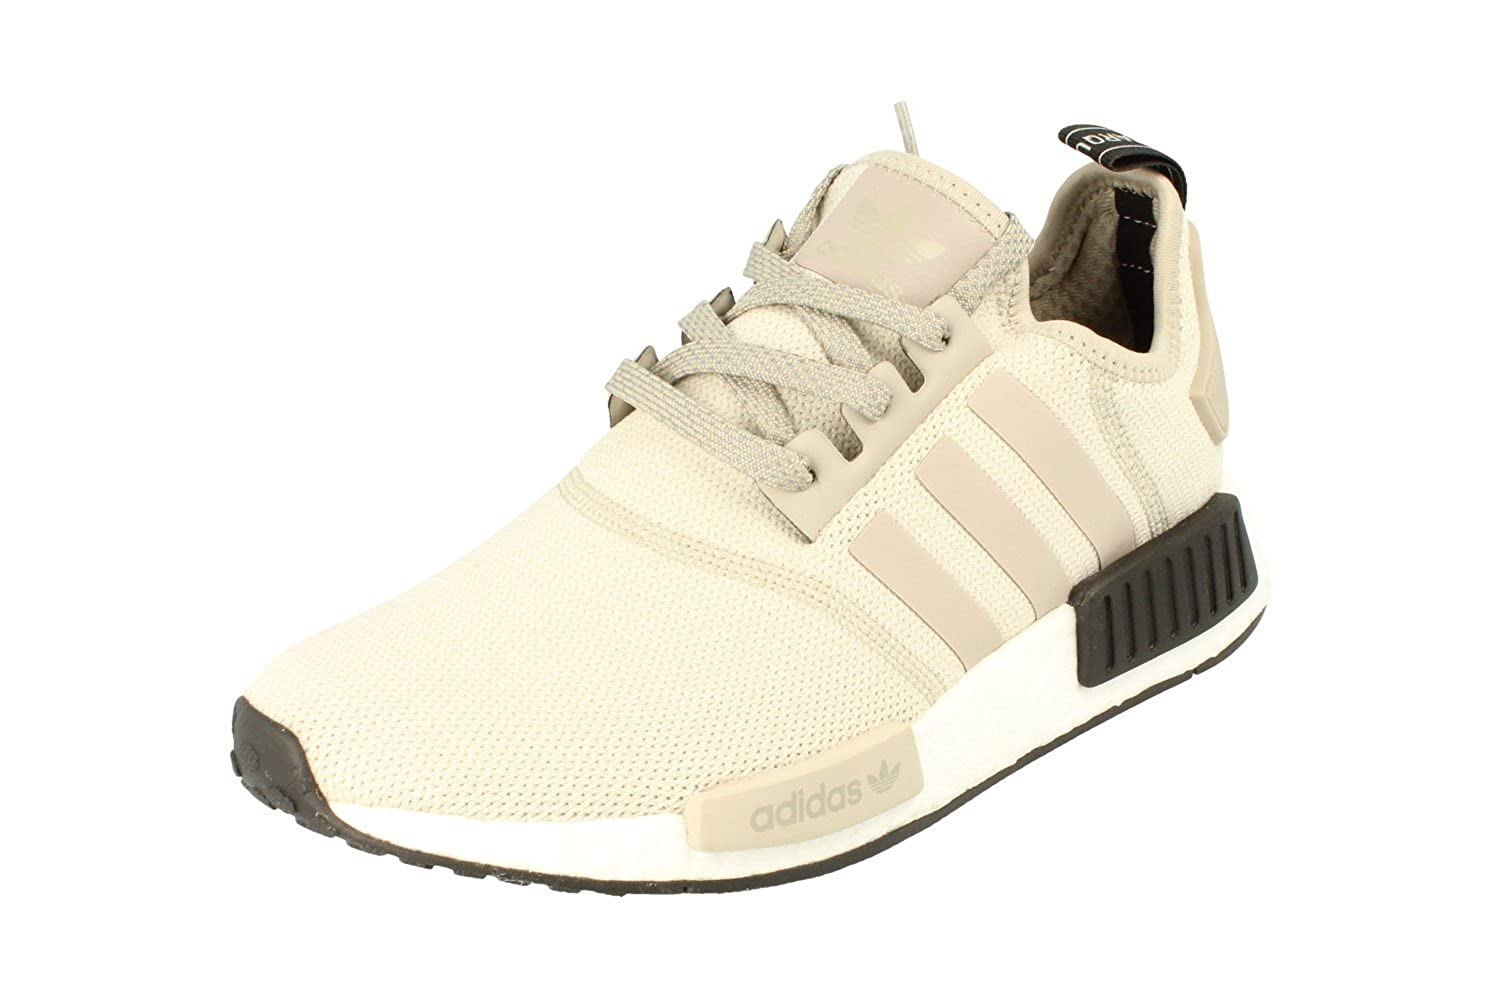 watch d6a9c 4ef11 Amazon.com | adidas Originals NMD R1 Mens Trainers Sneakers ...